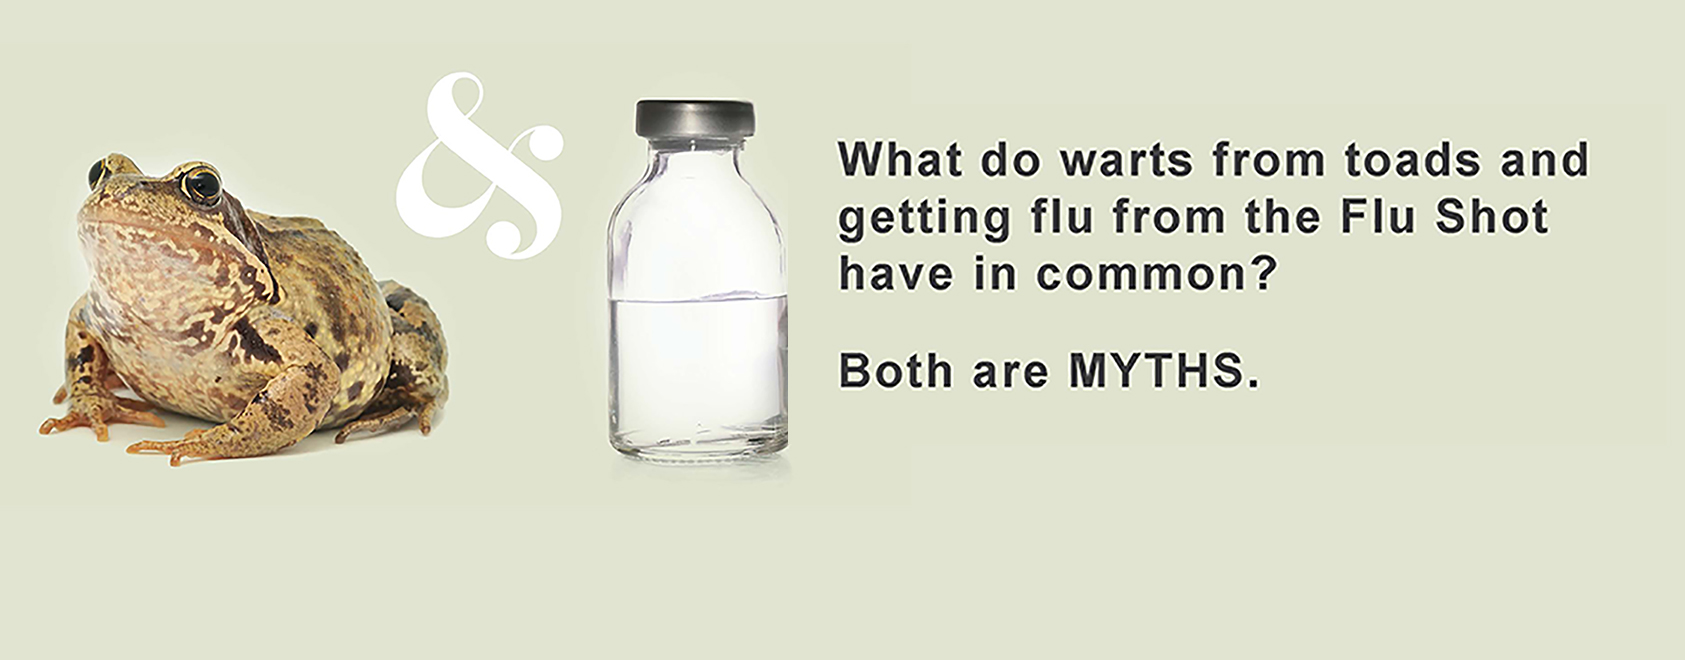 What do warts from toads and getting the flu from the Flu Shot have in common?  Both are Myths